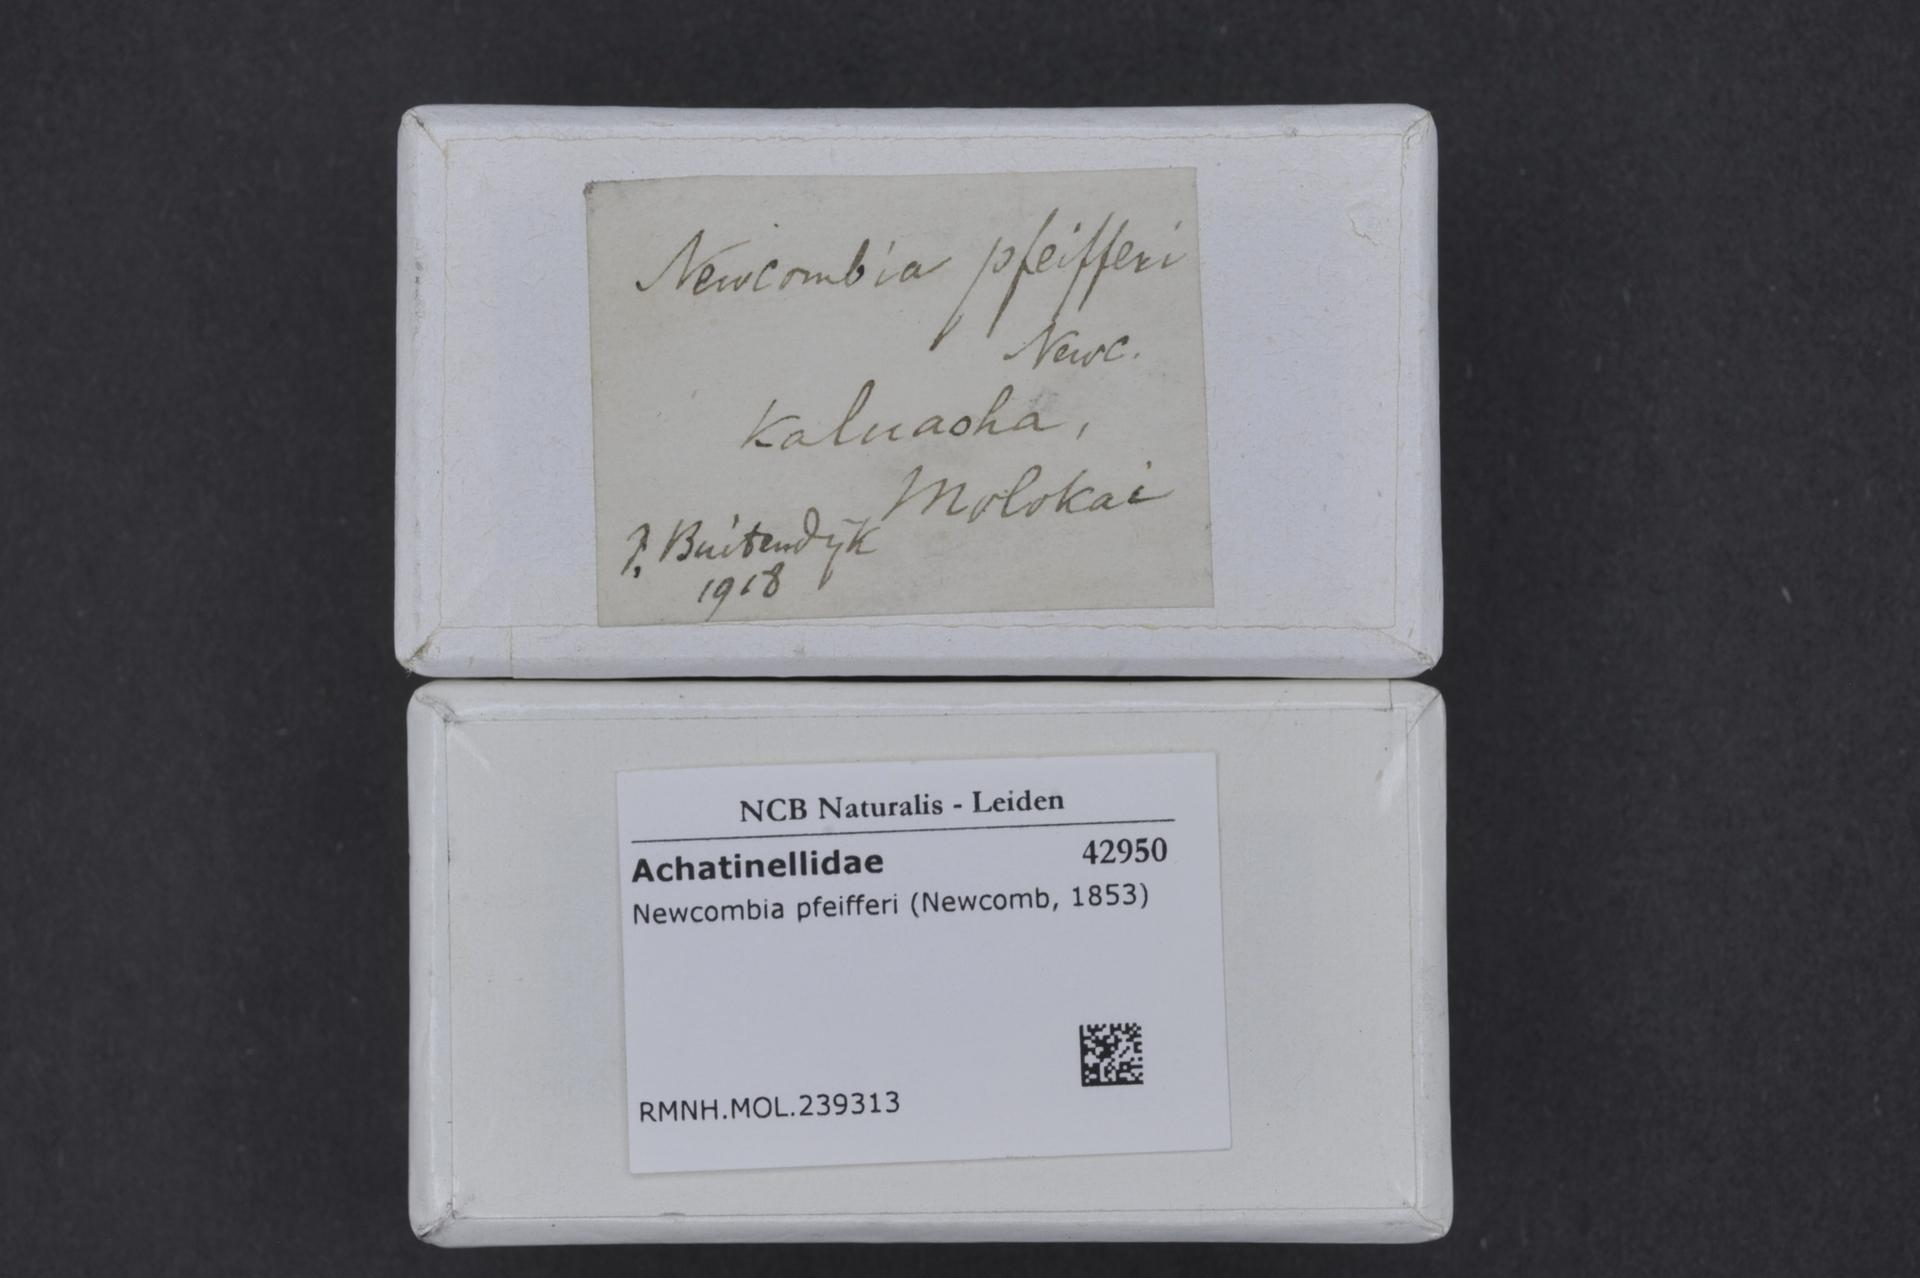 Image of Newcombia Pfeiffer 1854